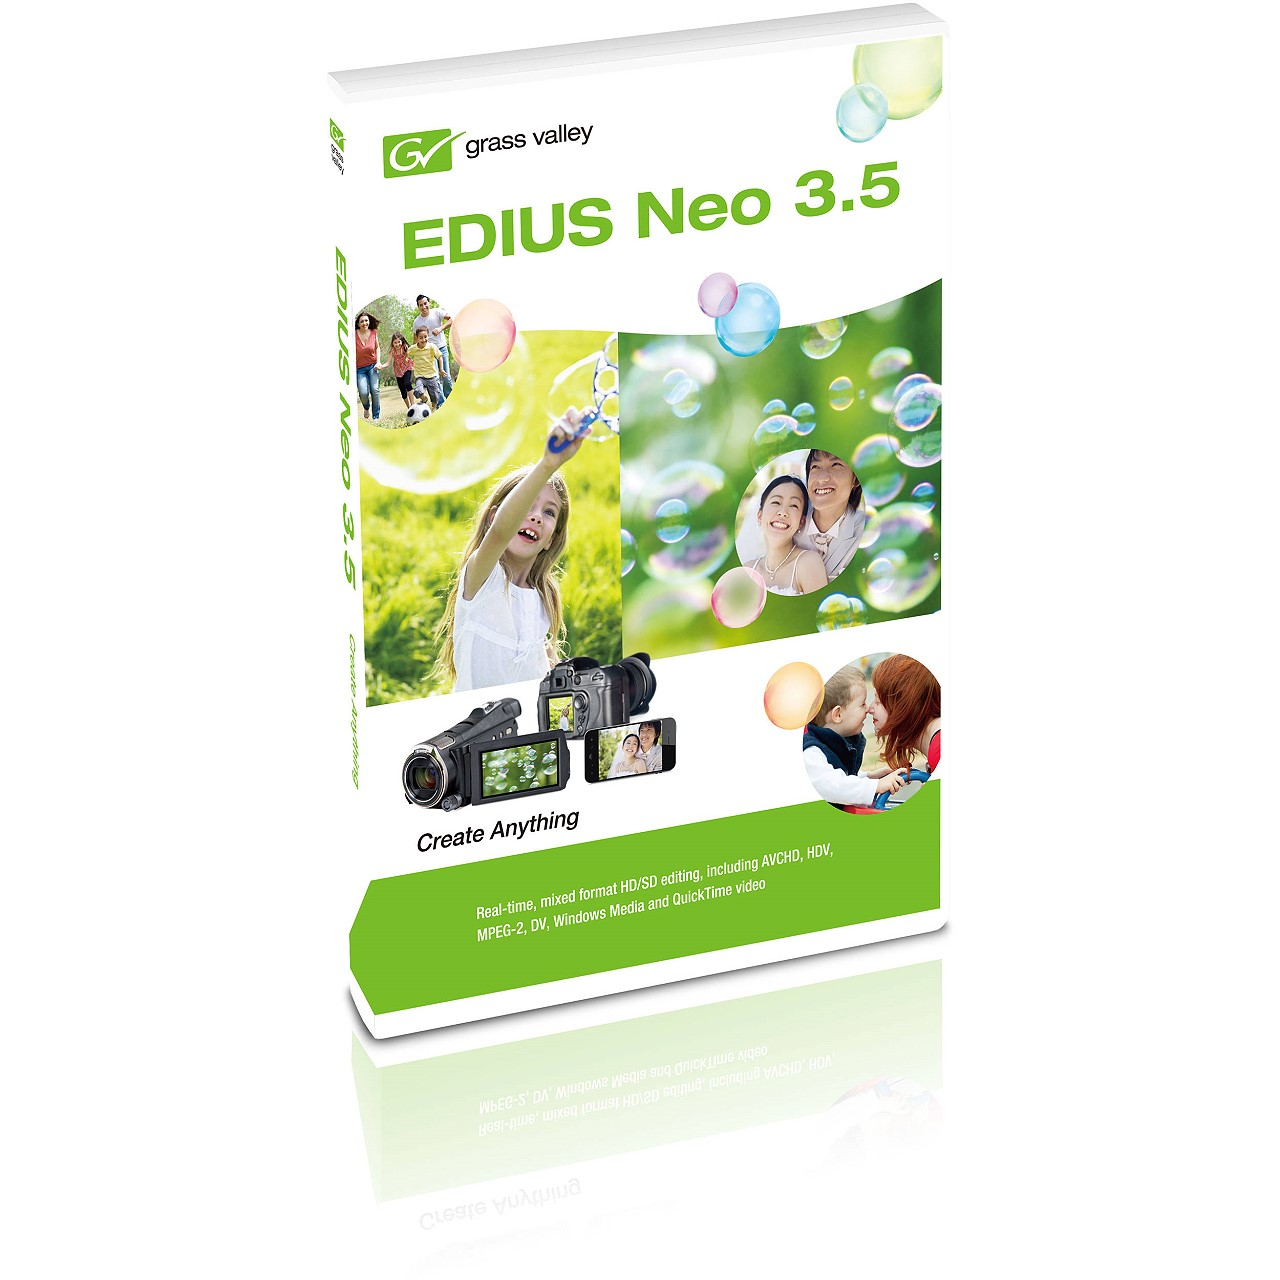 Foto EDIUS Neo 3.55 Videoschnitt Software VollVersion